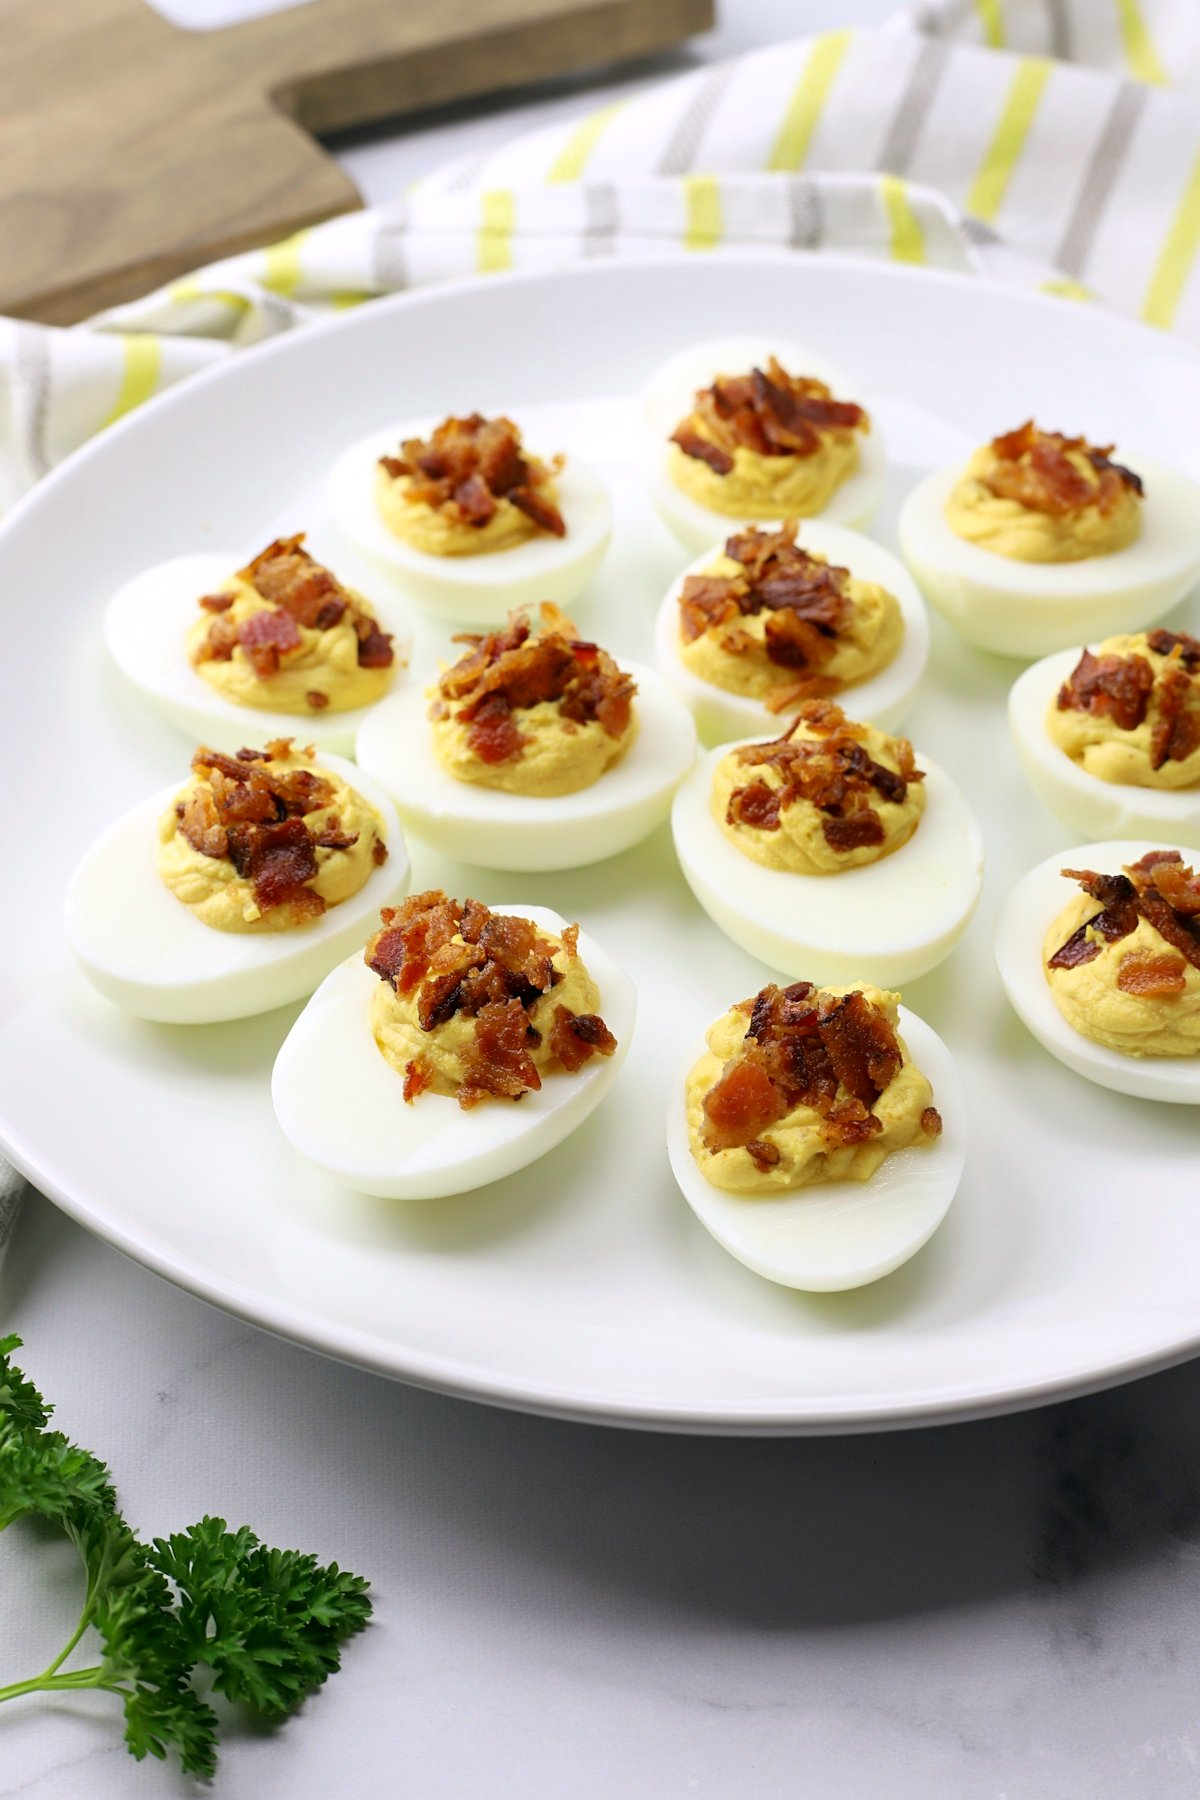 A white plate filled with deviled eggs.